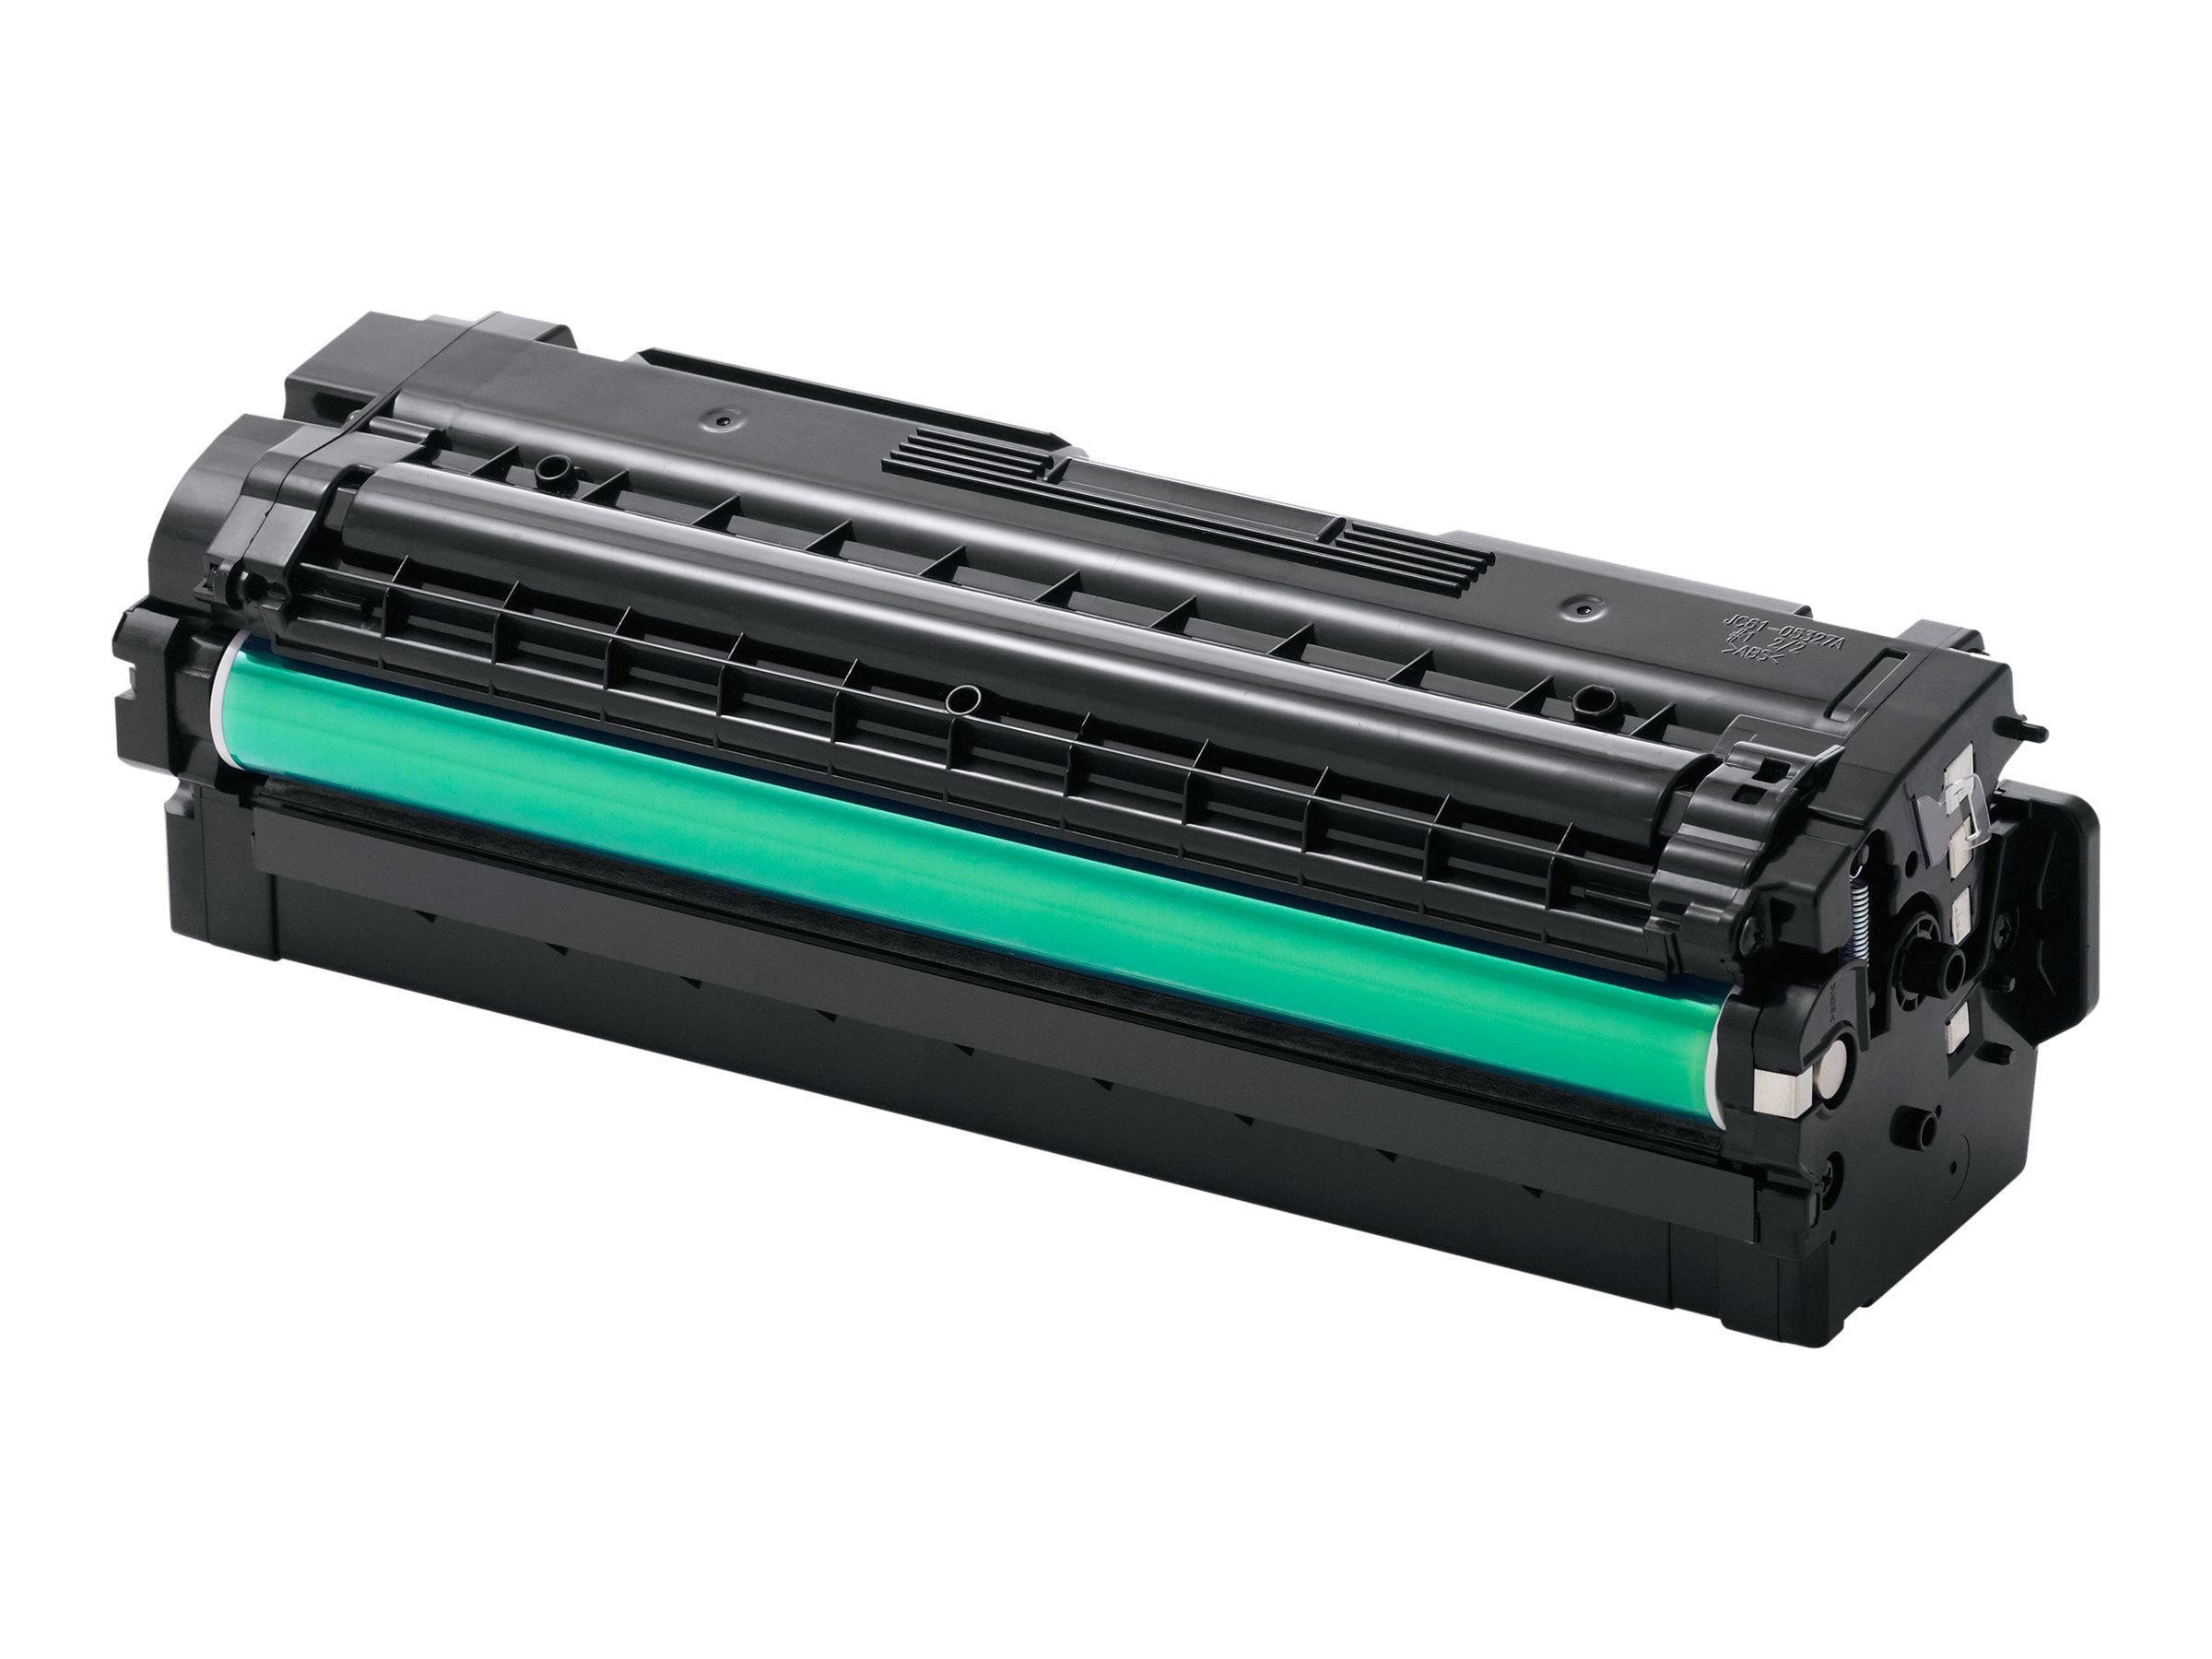 Samsung Black Toner Cartridge for ProXpress C2620DW & C2670FW